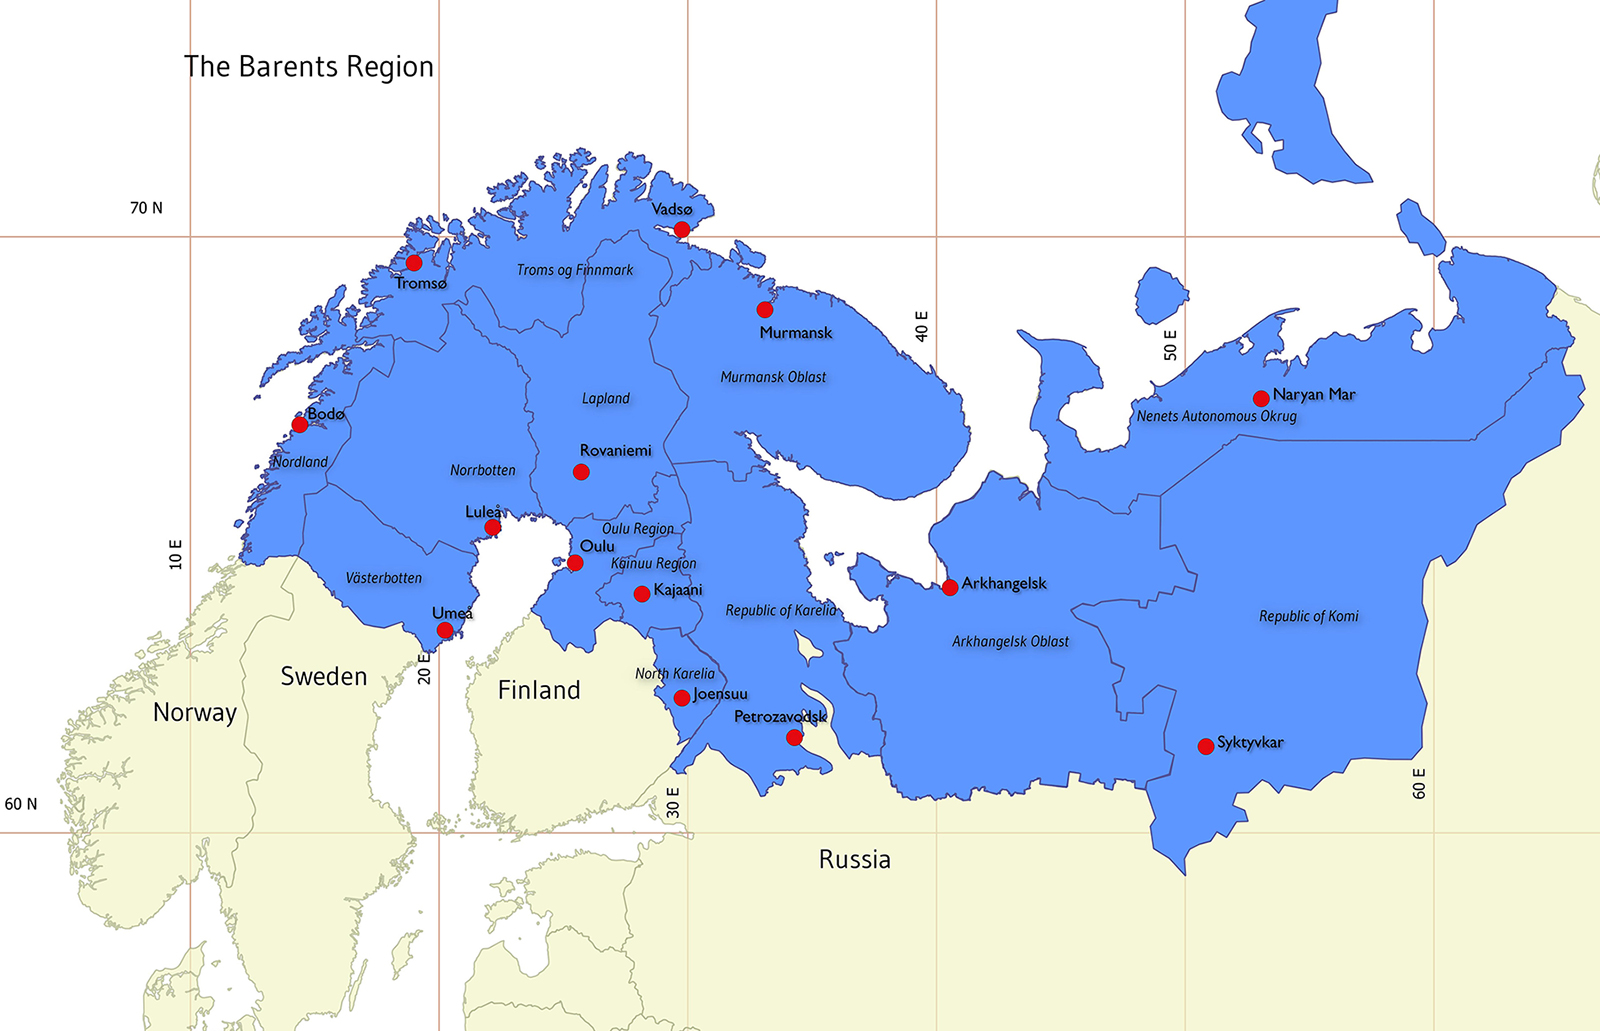 Barents-Region-blue-QGis-labels.jpg